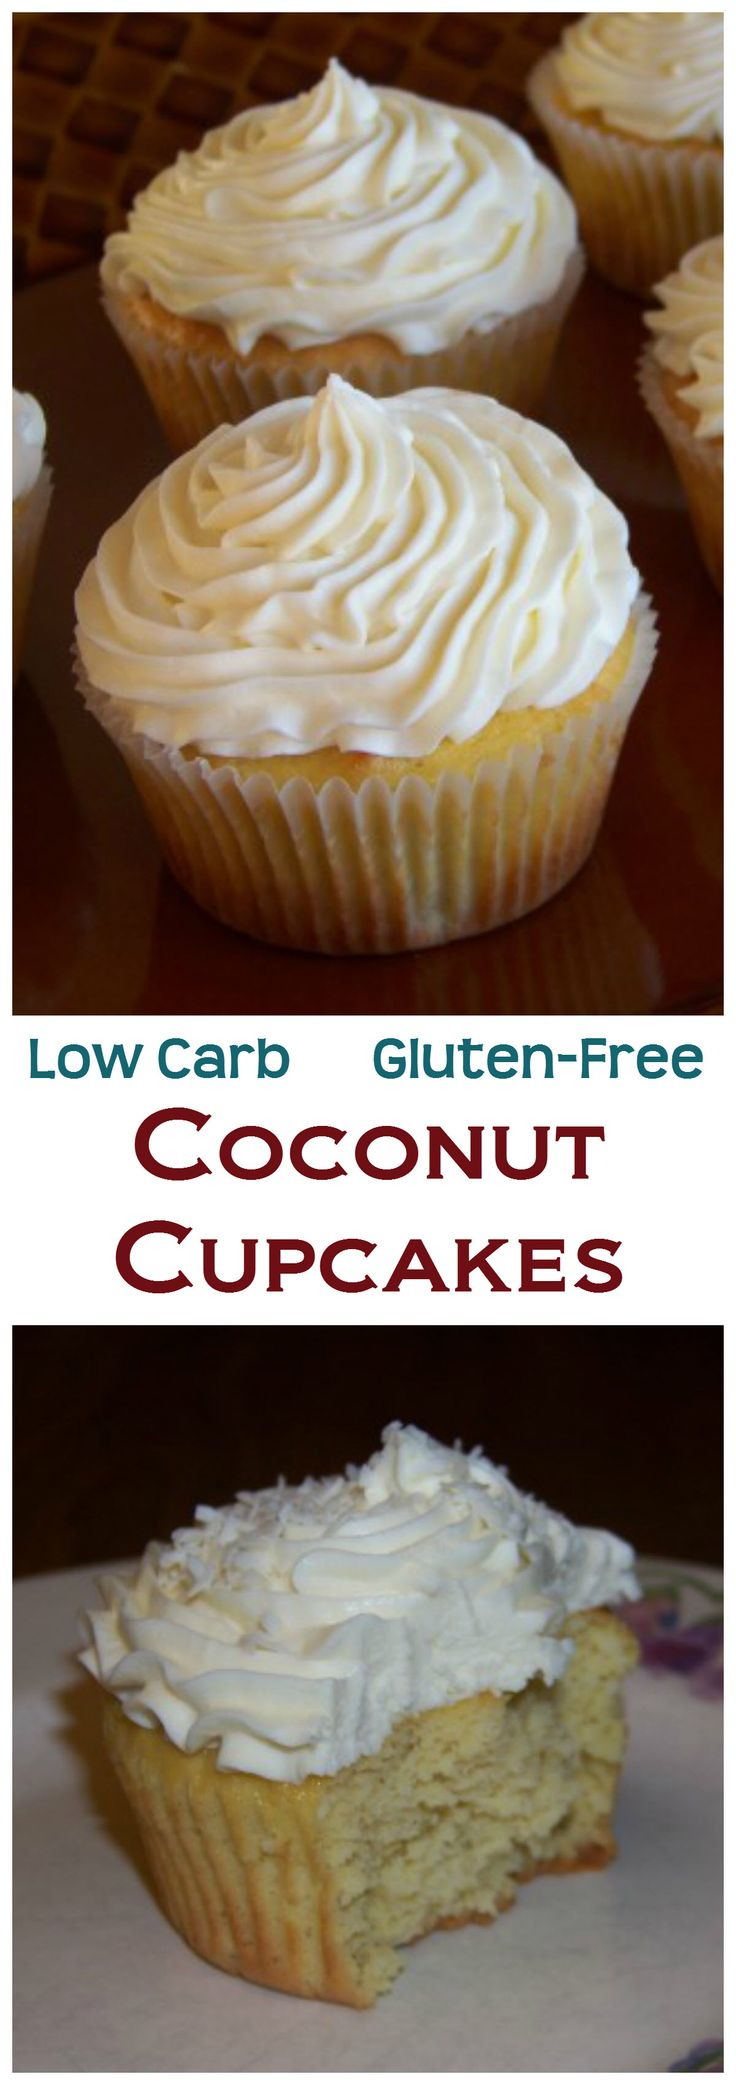 The texture of these low carb gluten free coconut cupcakes is nice and airy. Top with a sweet sugar-free buttercream frosting and a sprinkling of coconut. LCHF Keto Banting Recipe.